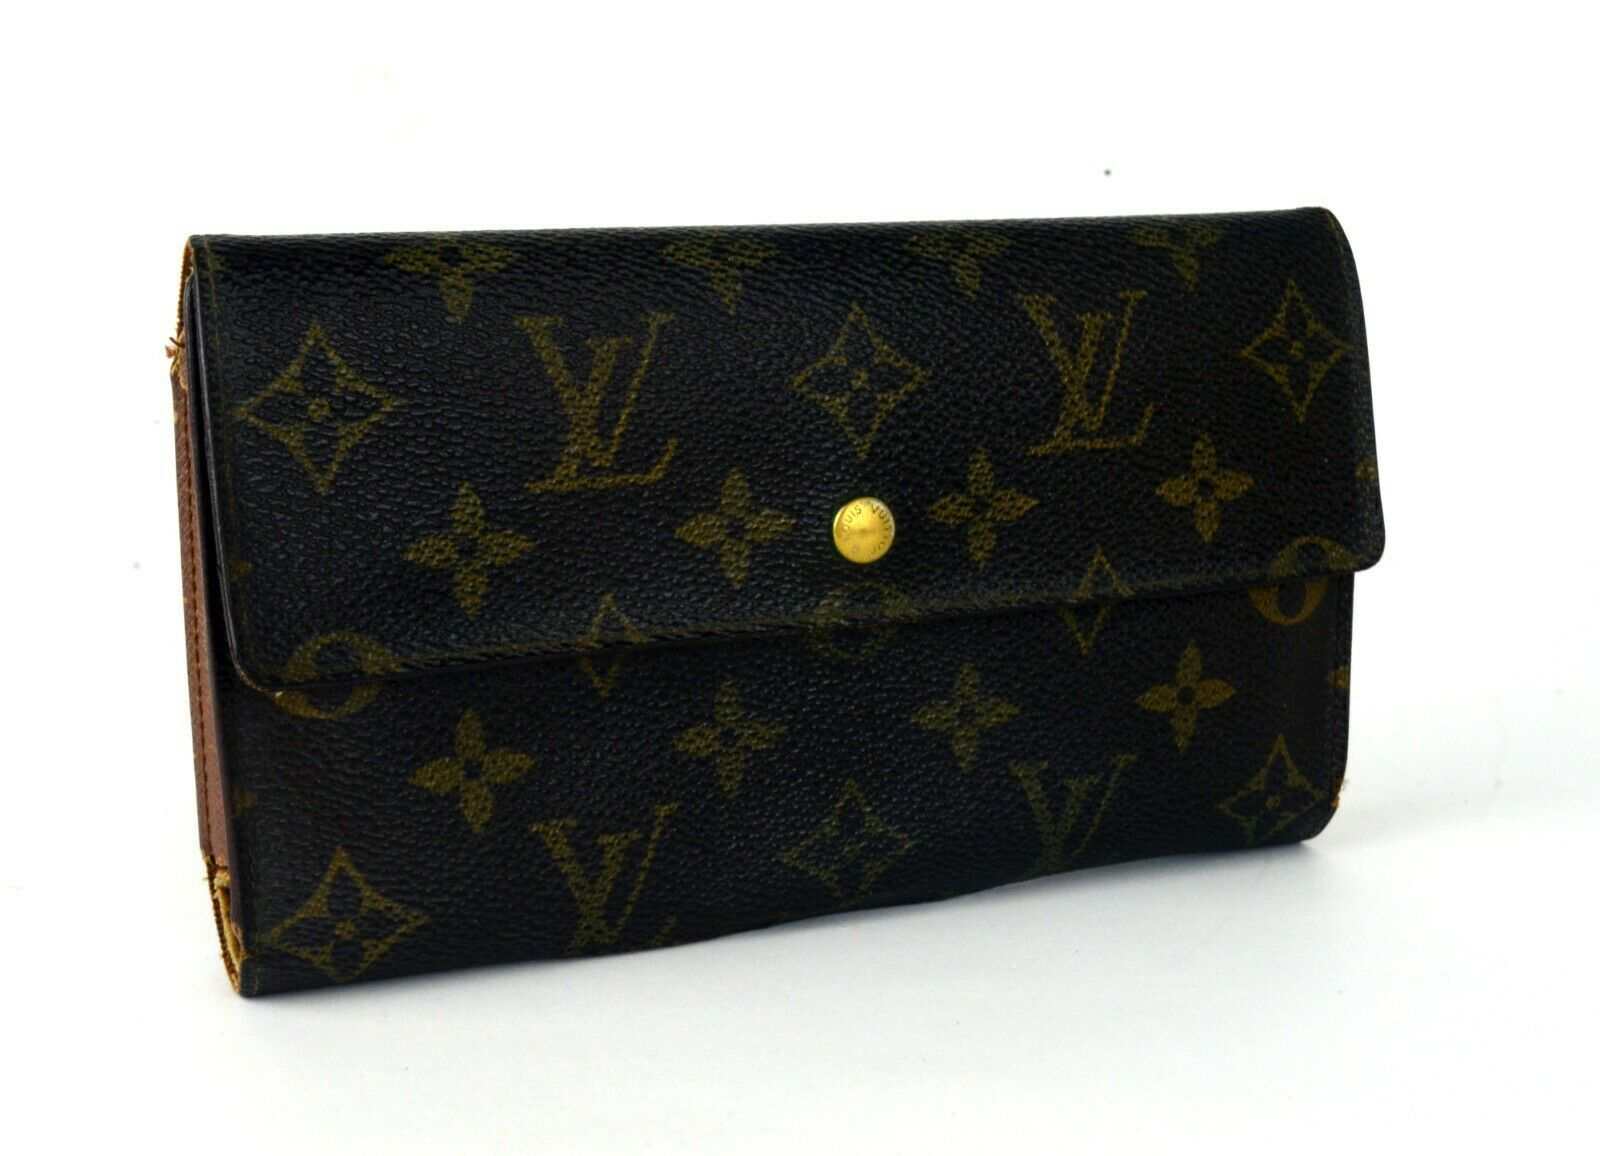 Primary image for Auth LOUIS VUITTON Monogram Canvas & Leather Trifold Envelope Long Wallet Purse